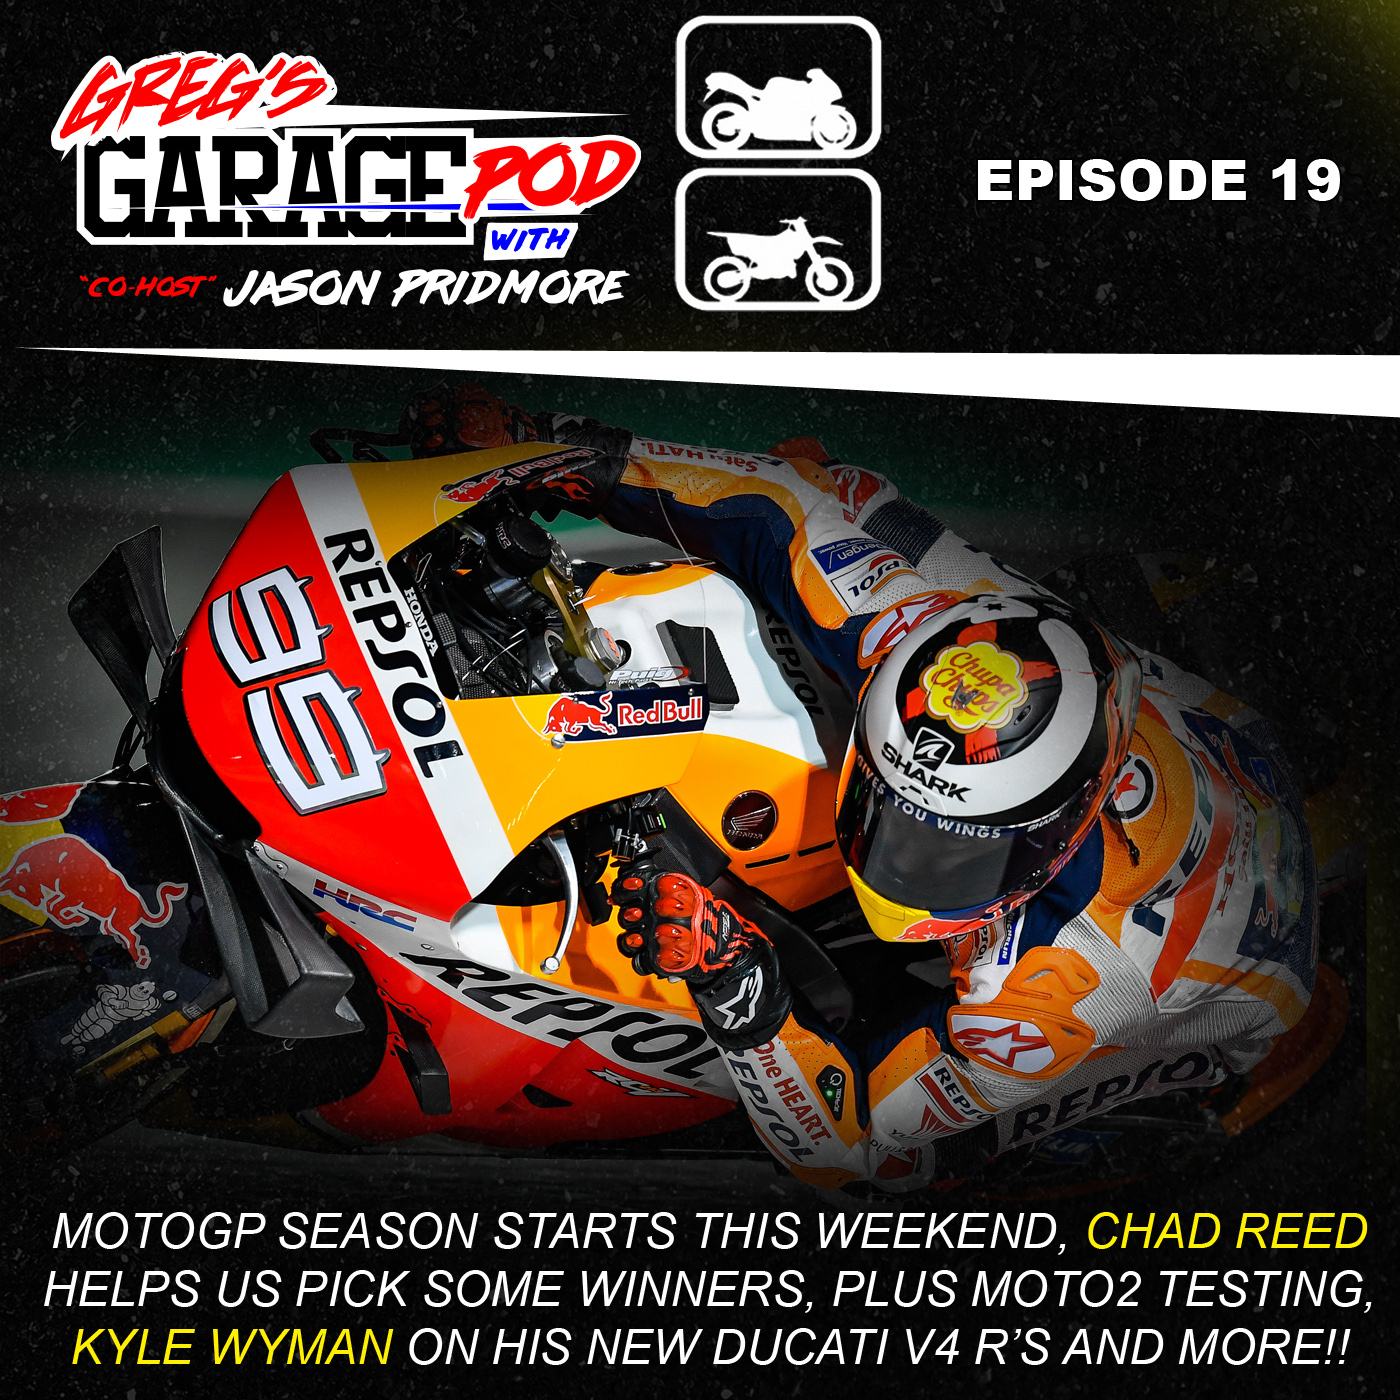 Ep19 - MotoGP season preview with Chad Reed s predictions for the MotoGP  weekend. Guest Kyle Wyman gets his Ducati V4 R s 160fdc549d42